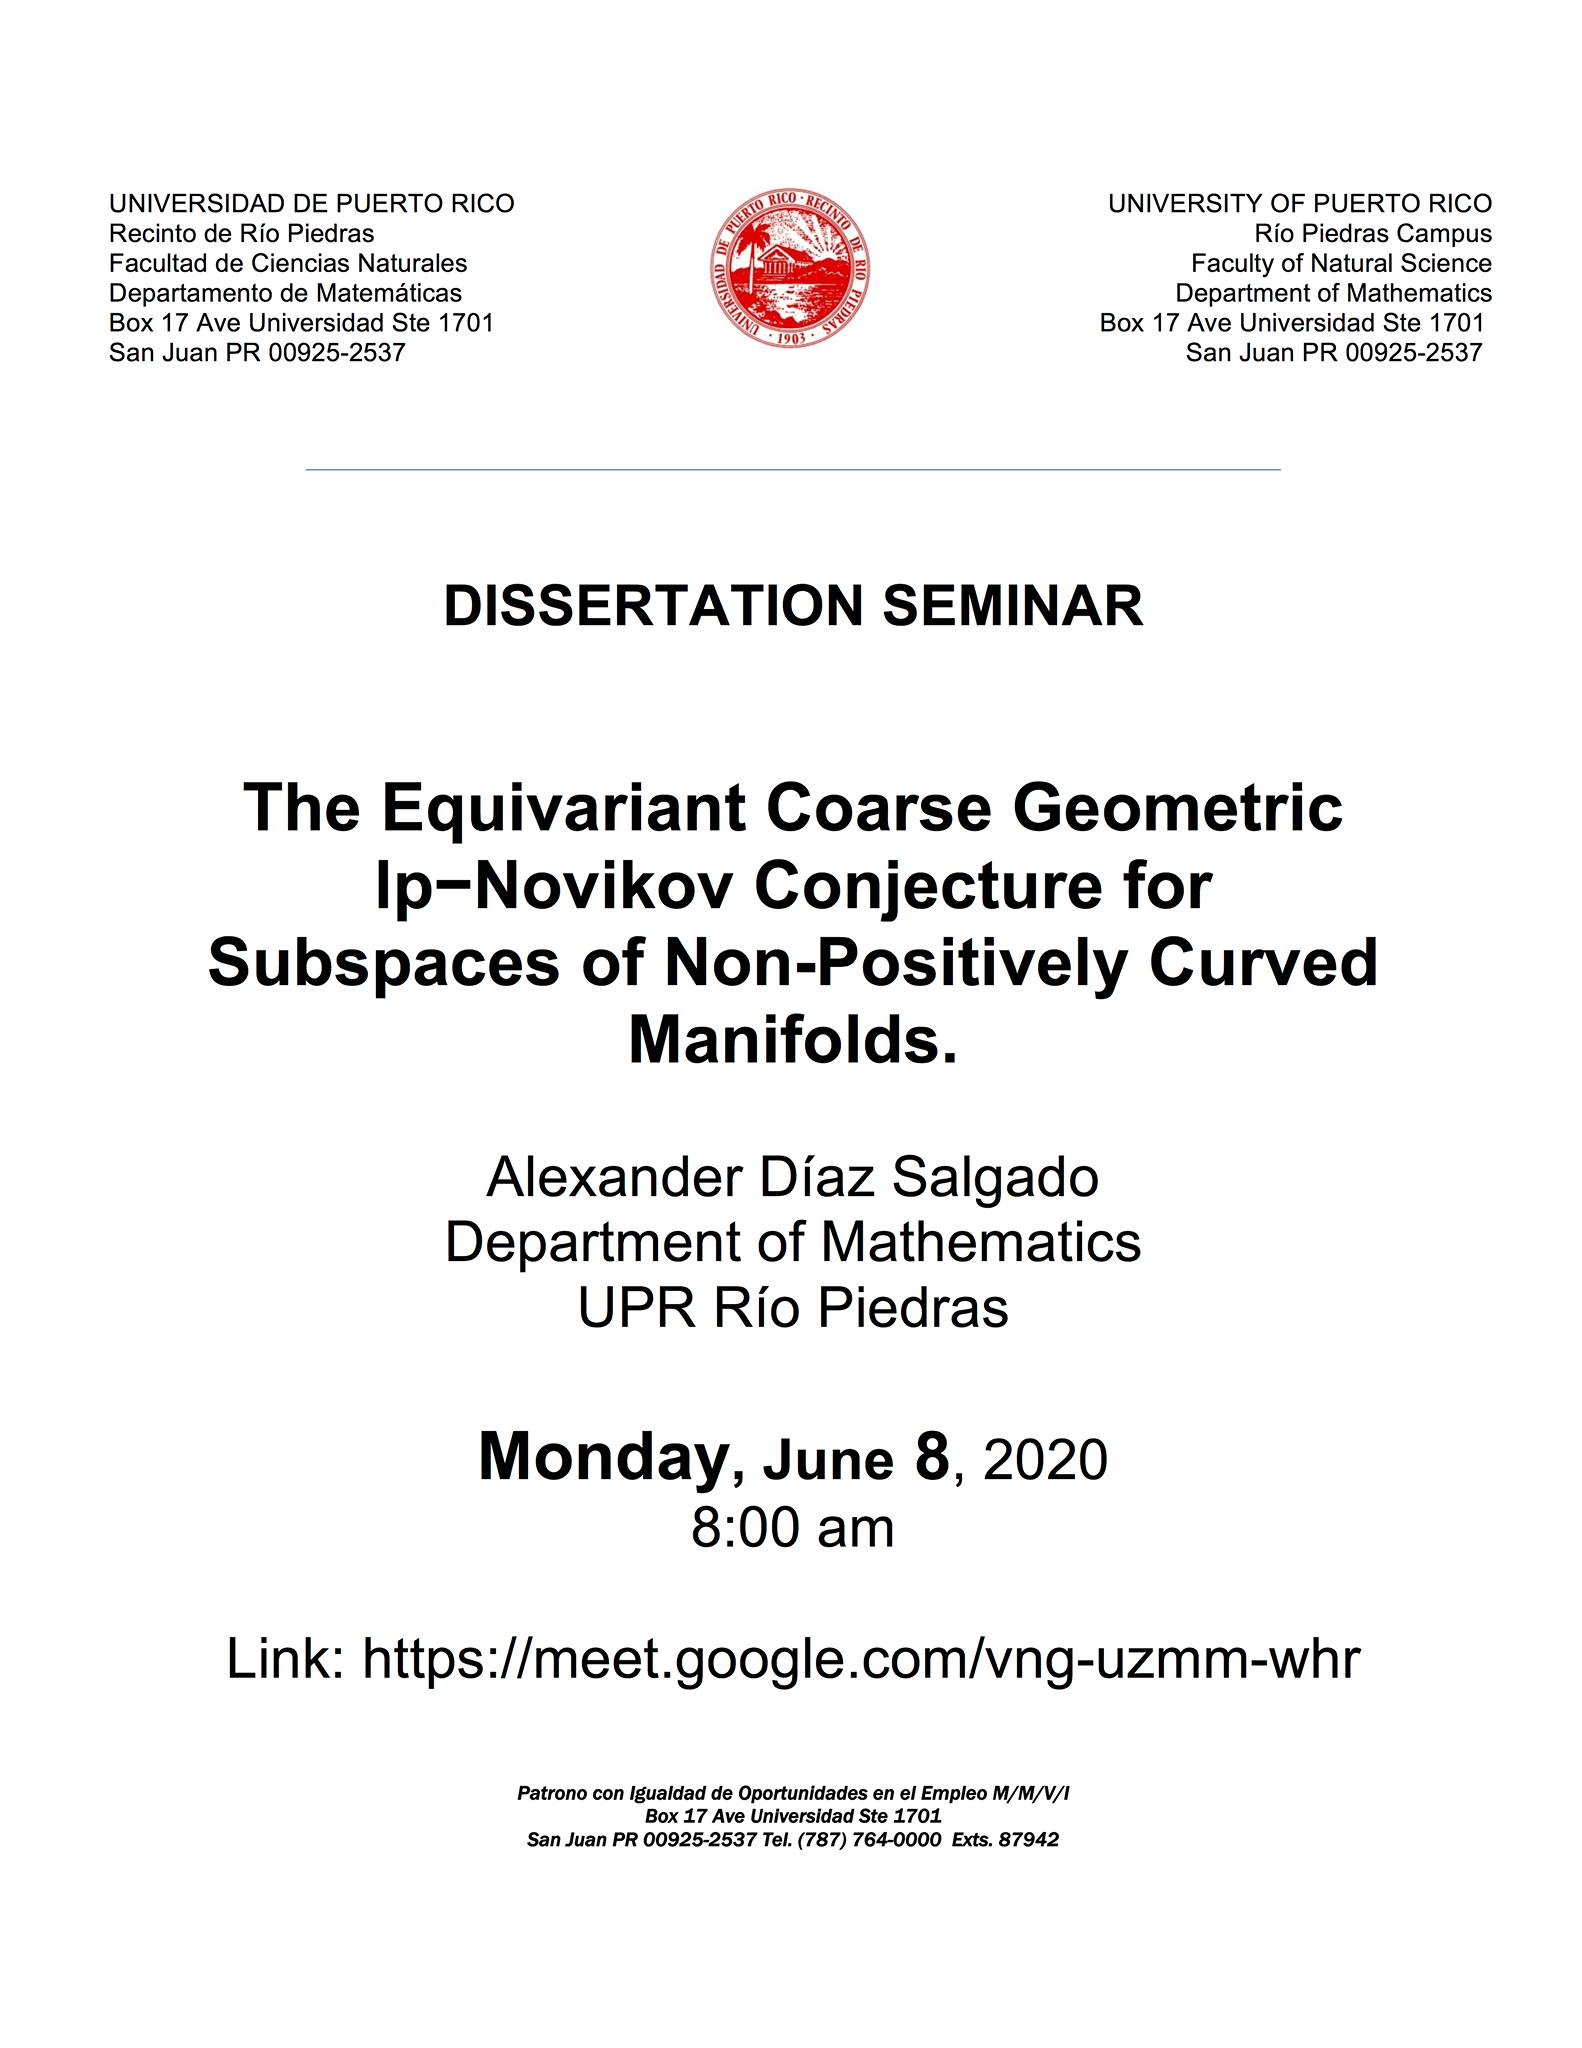 Dissertation Seminar: The equivalent Coarse Geometric Ip-Novikov Conjecture for Subspaces of Non-Positively Curved Manifolds